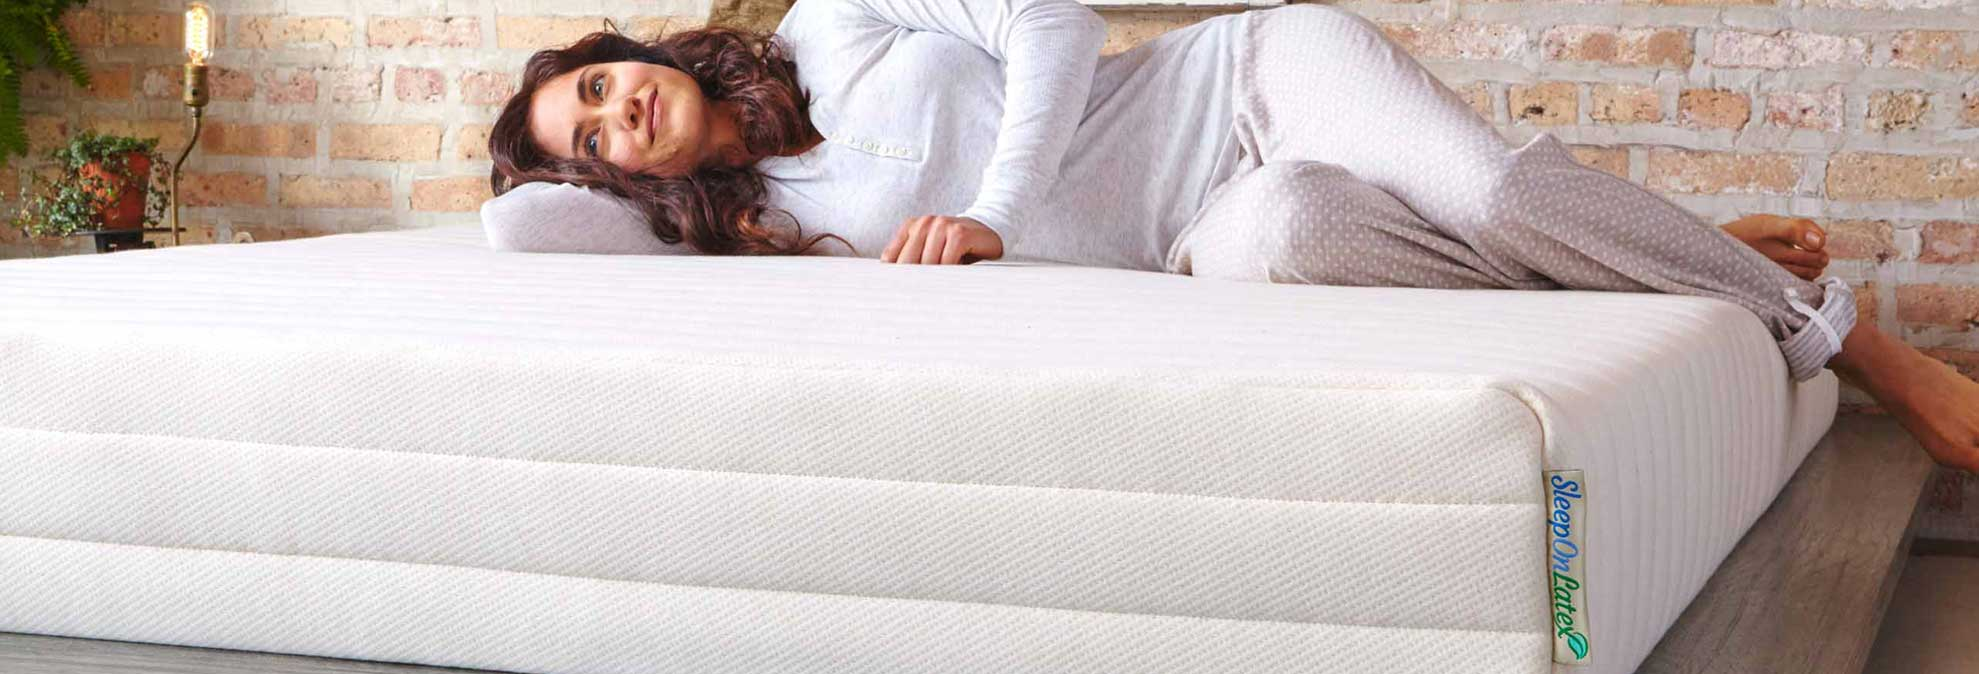 Best Mattress For Your Size And Sleep Style Consumer Reports